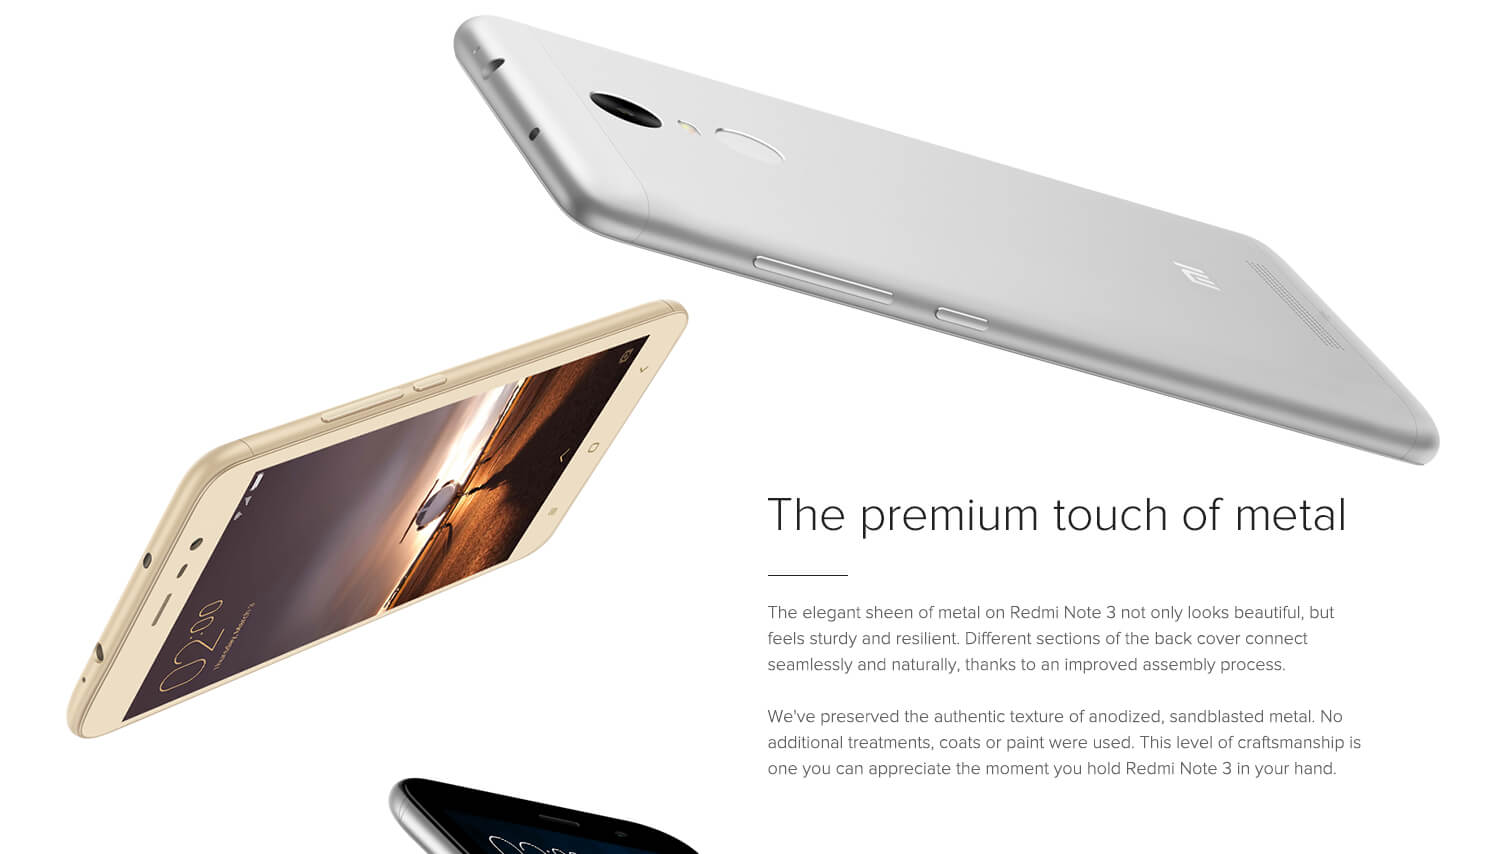 redmi note 3 with Metal Finish